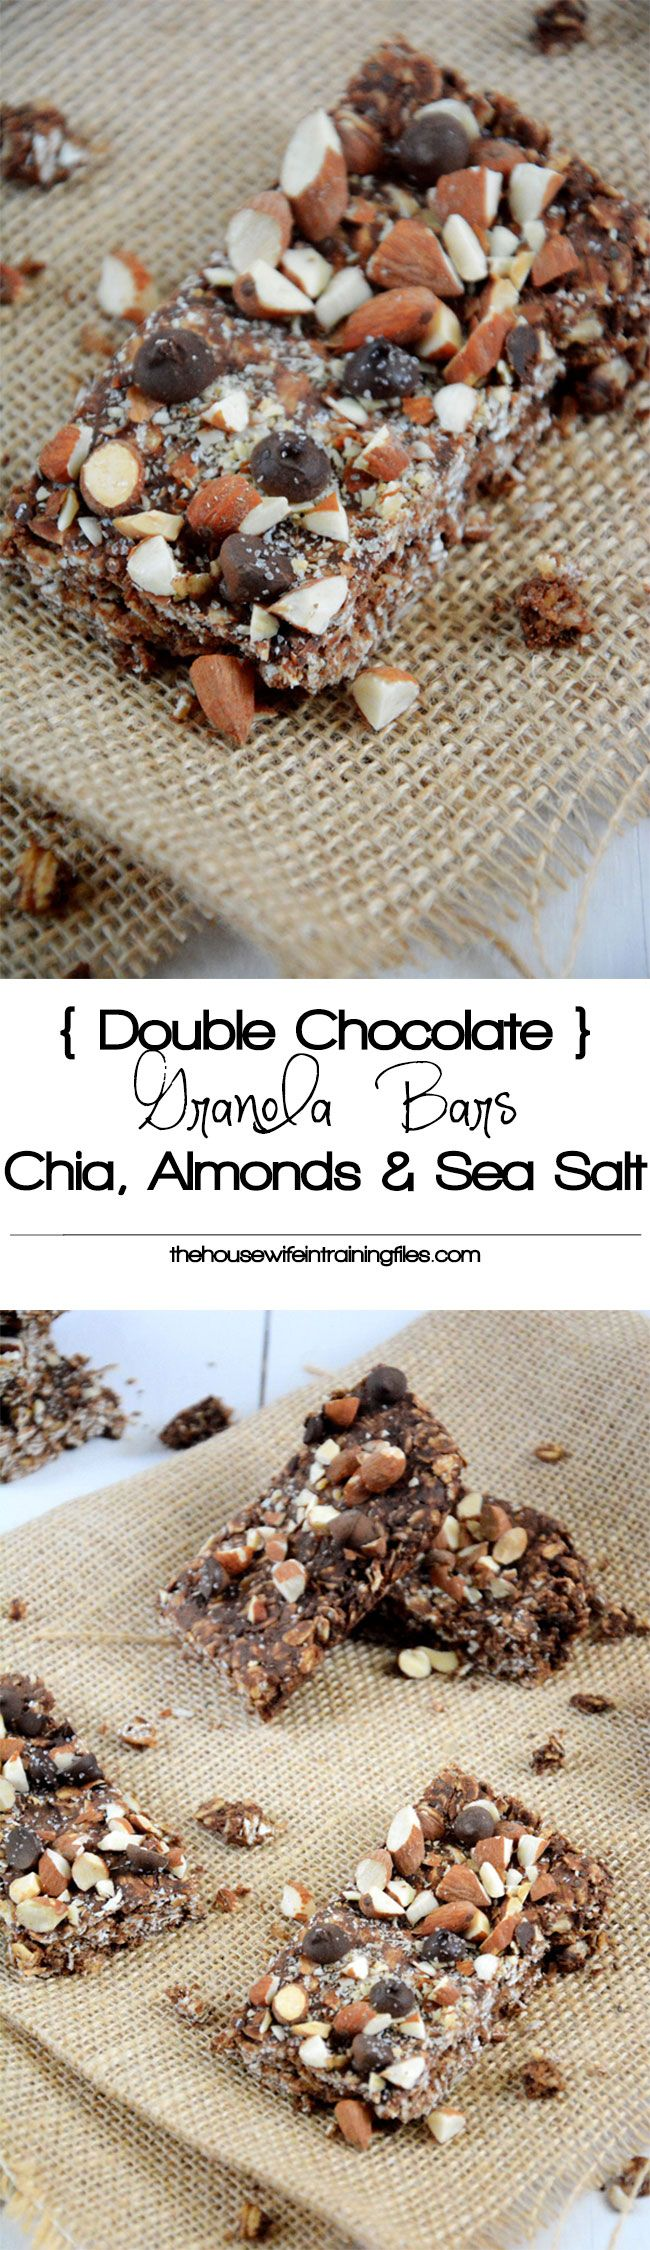 A homemade chocolate granola bar filled with double chocolate, cinnamon and chia seeds! No need to buy store bought as these bars are ready in under 30 minutes!